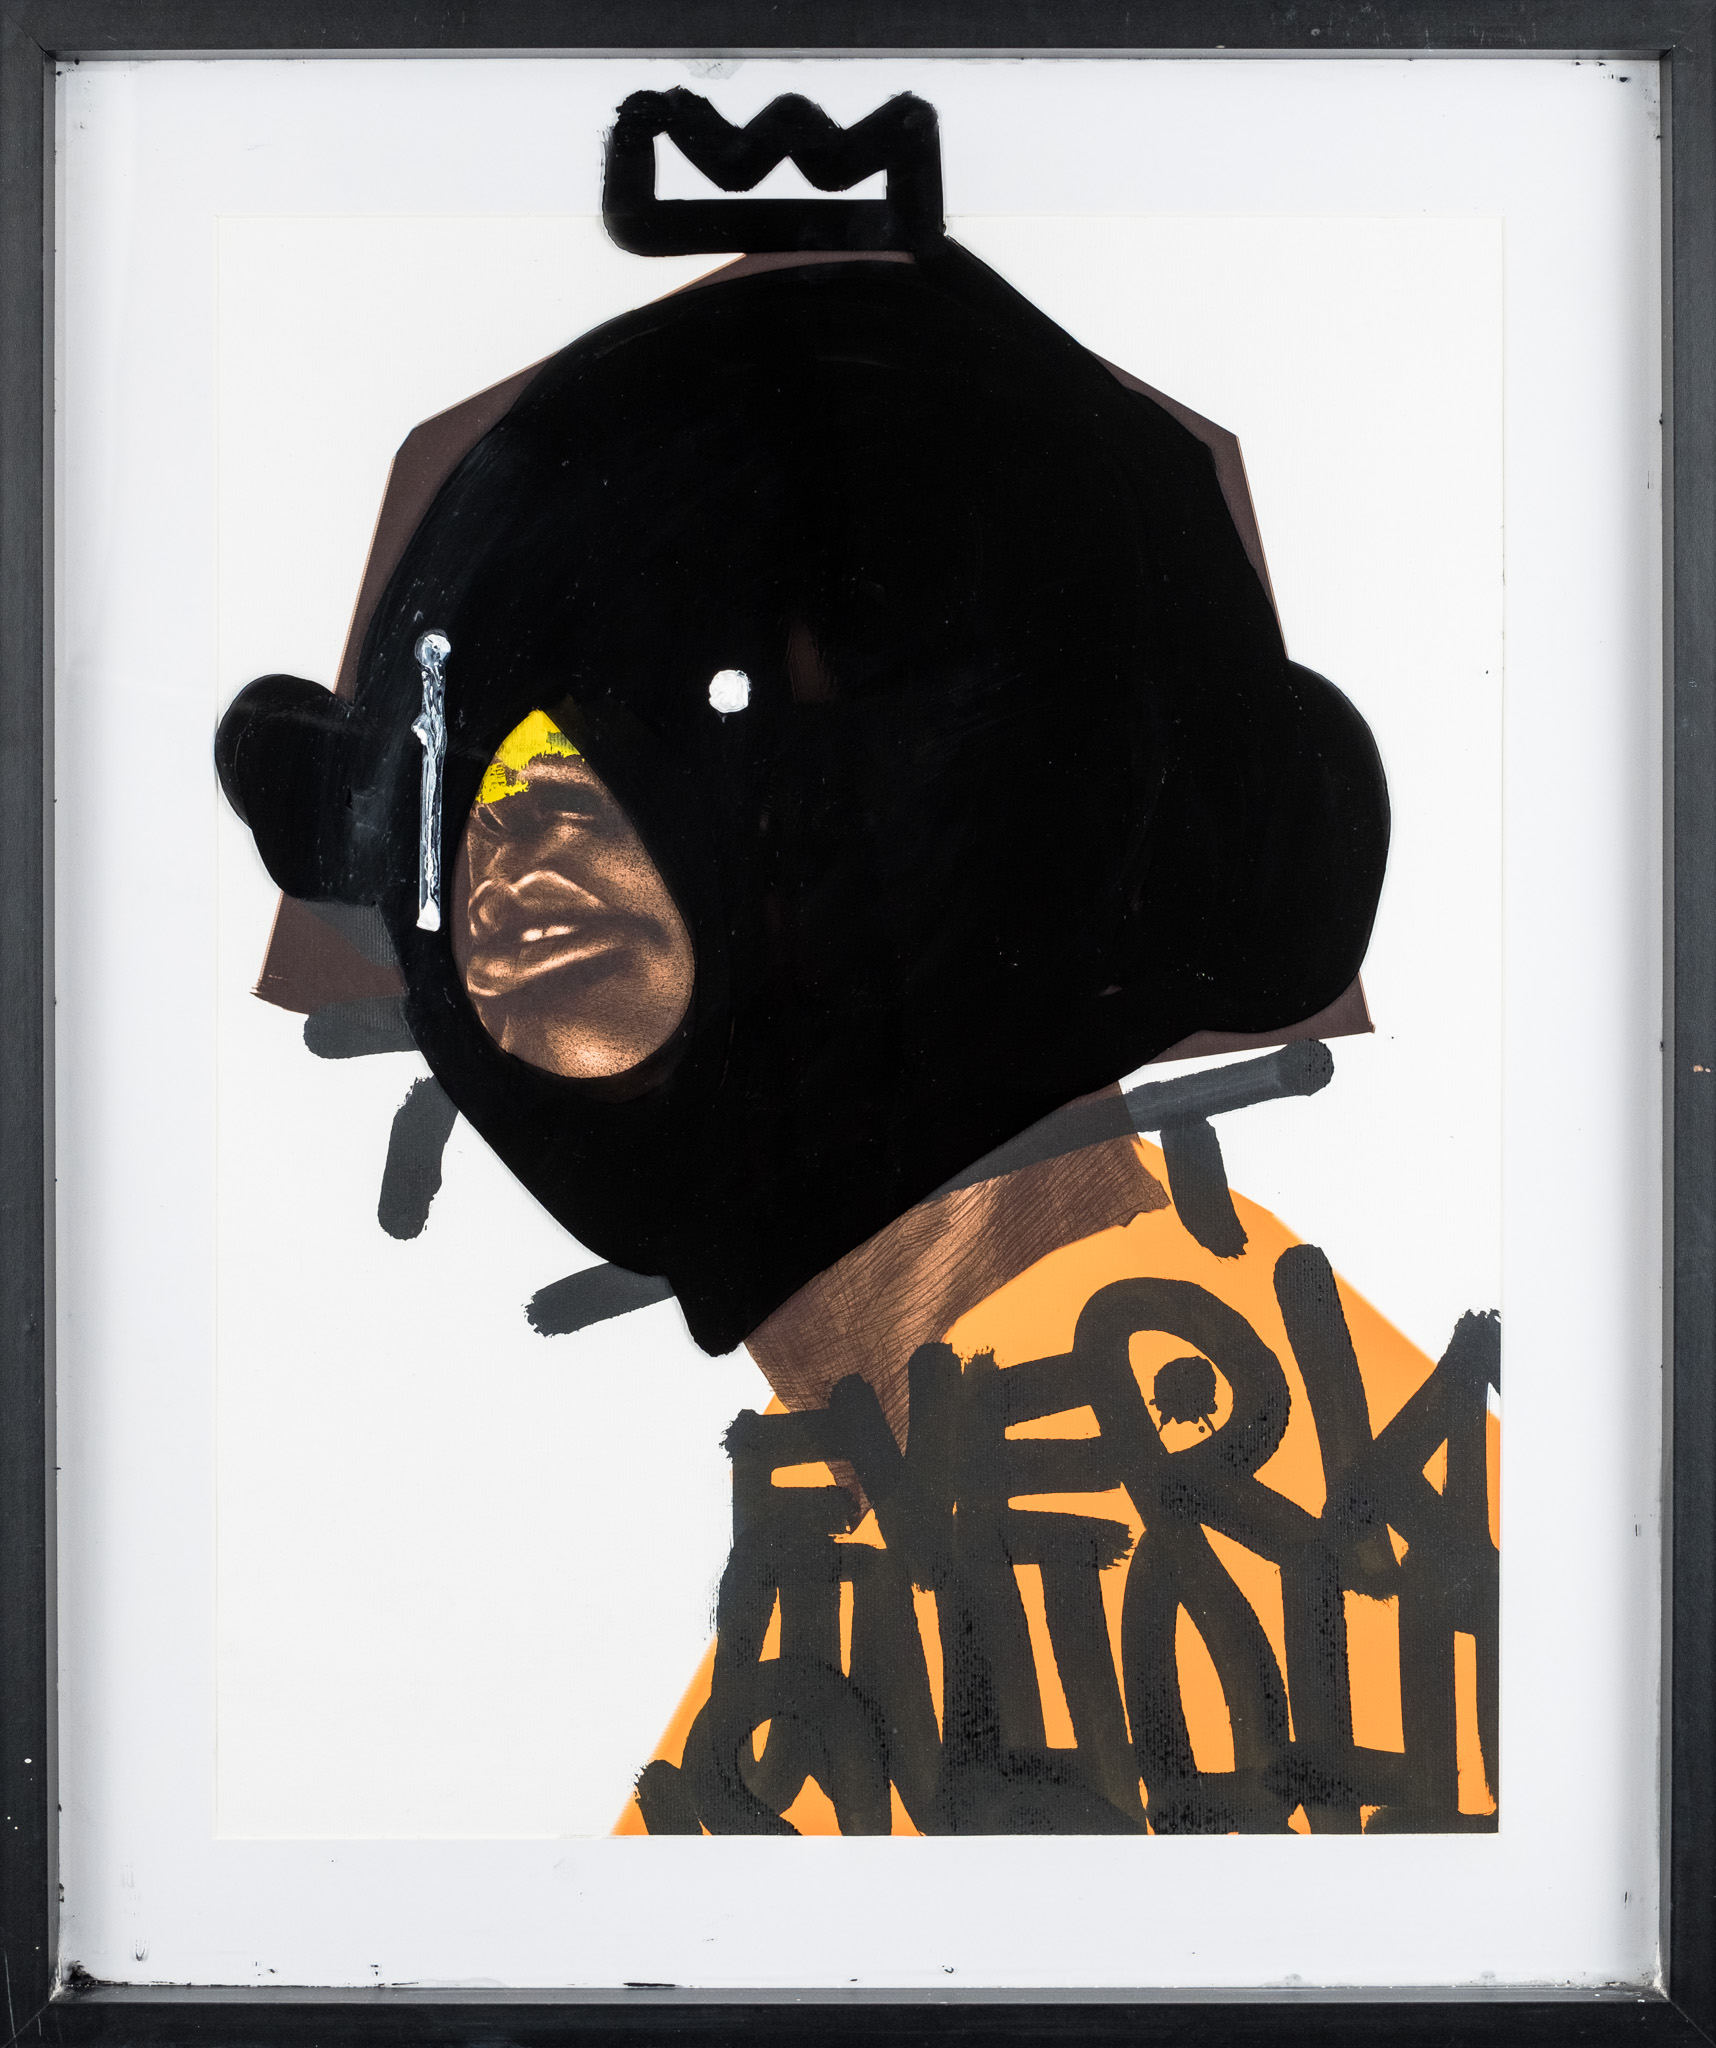 Seth Pimentel, Reflect, 2019  Digital drawing printed on  420mm x 589mm paper  and oil painted on the glass frame  Edition 1/1  R8500 (Framed)